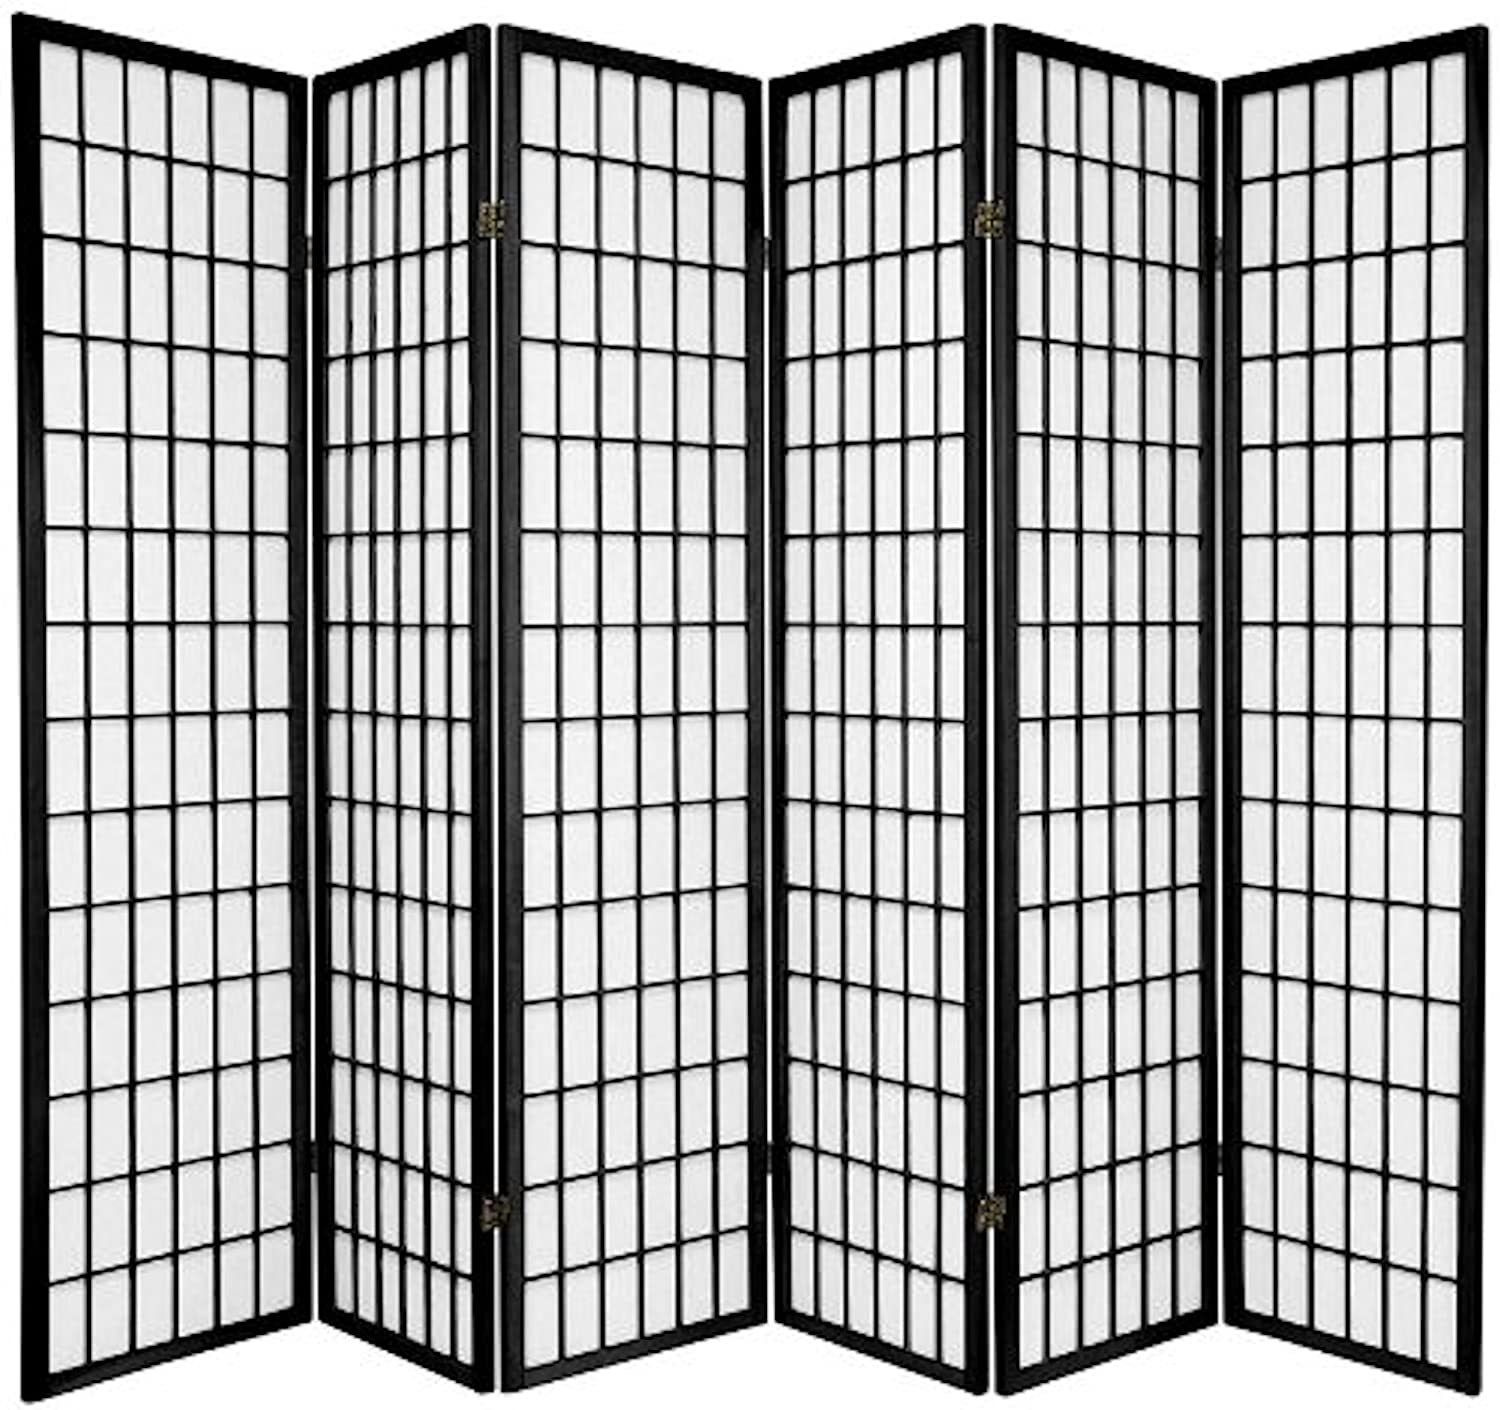 Legacy Decor 6-panel Room Screen Panel Divider Black Finish - Amazon.com: Panel Screens: Home & Kitchen